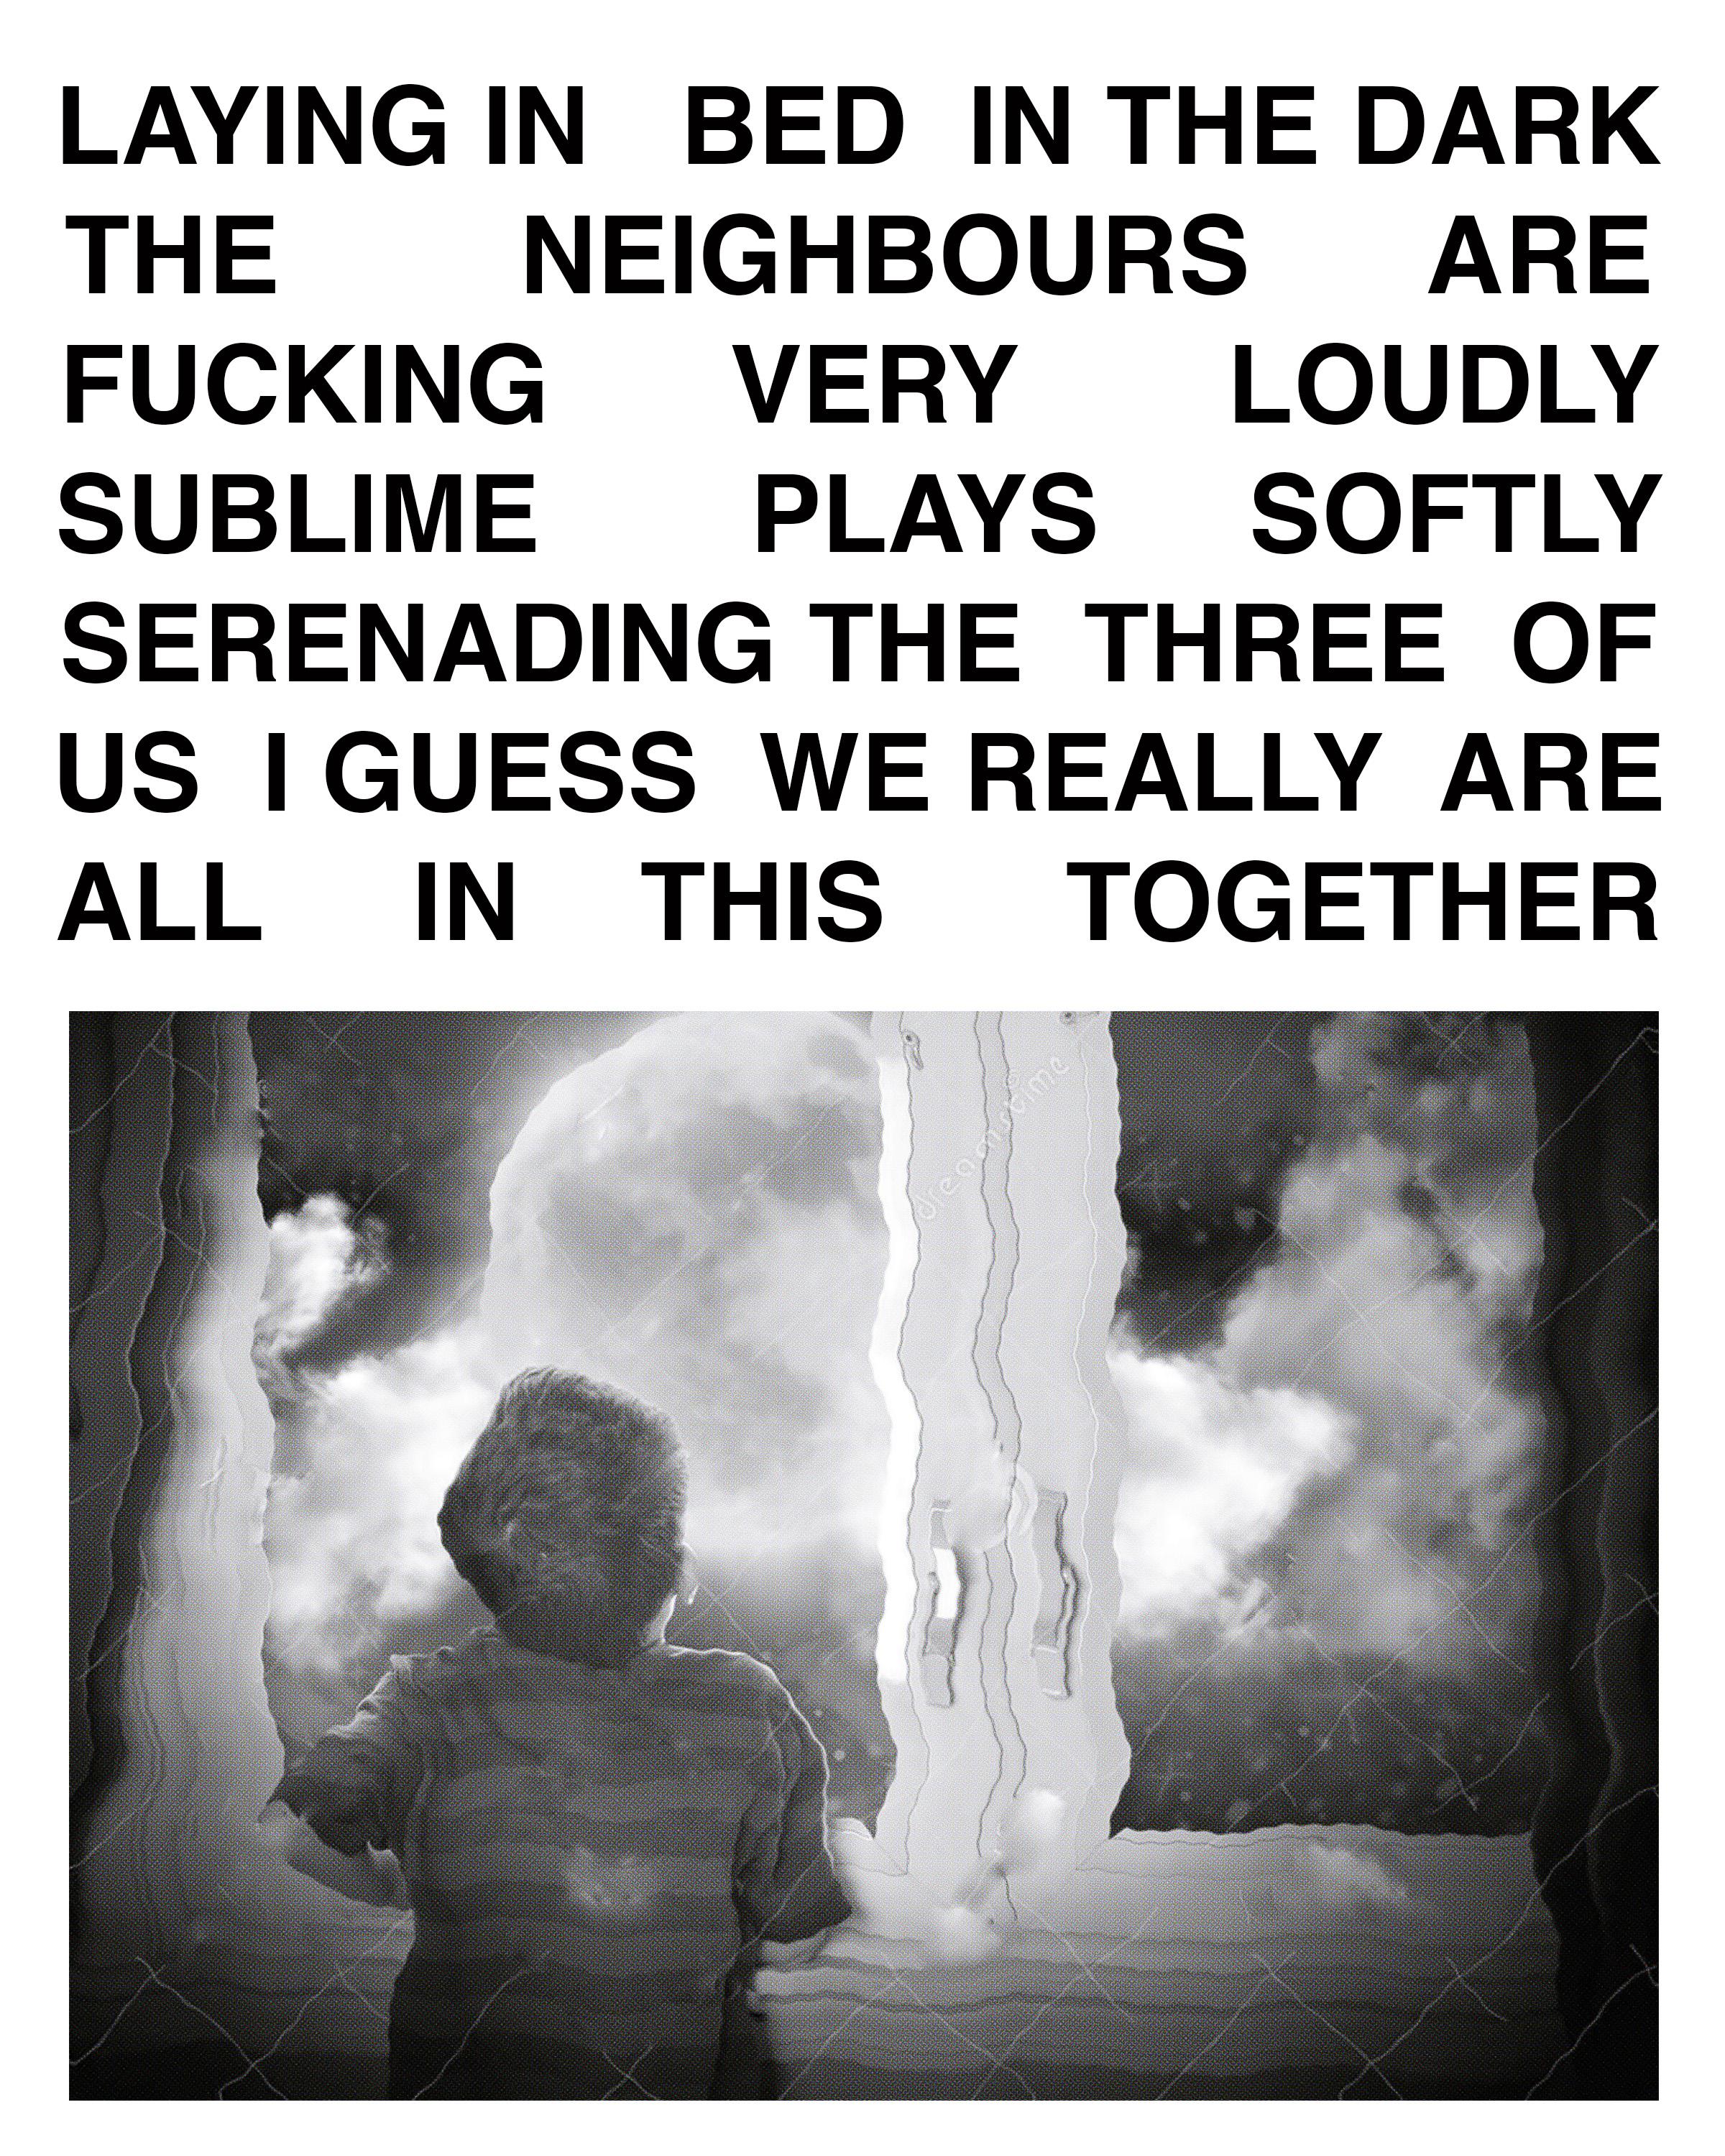 neighbours.jpg